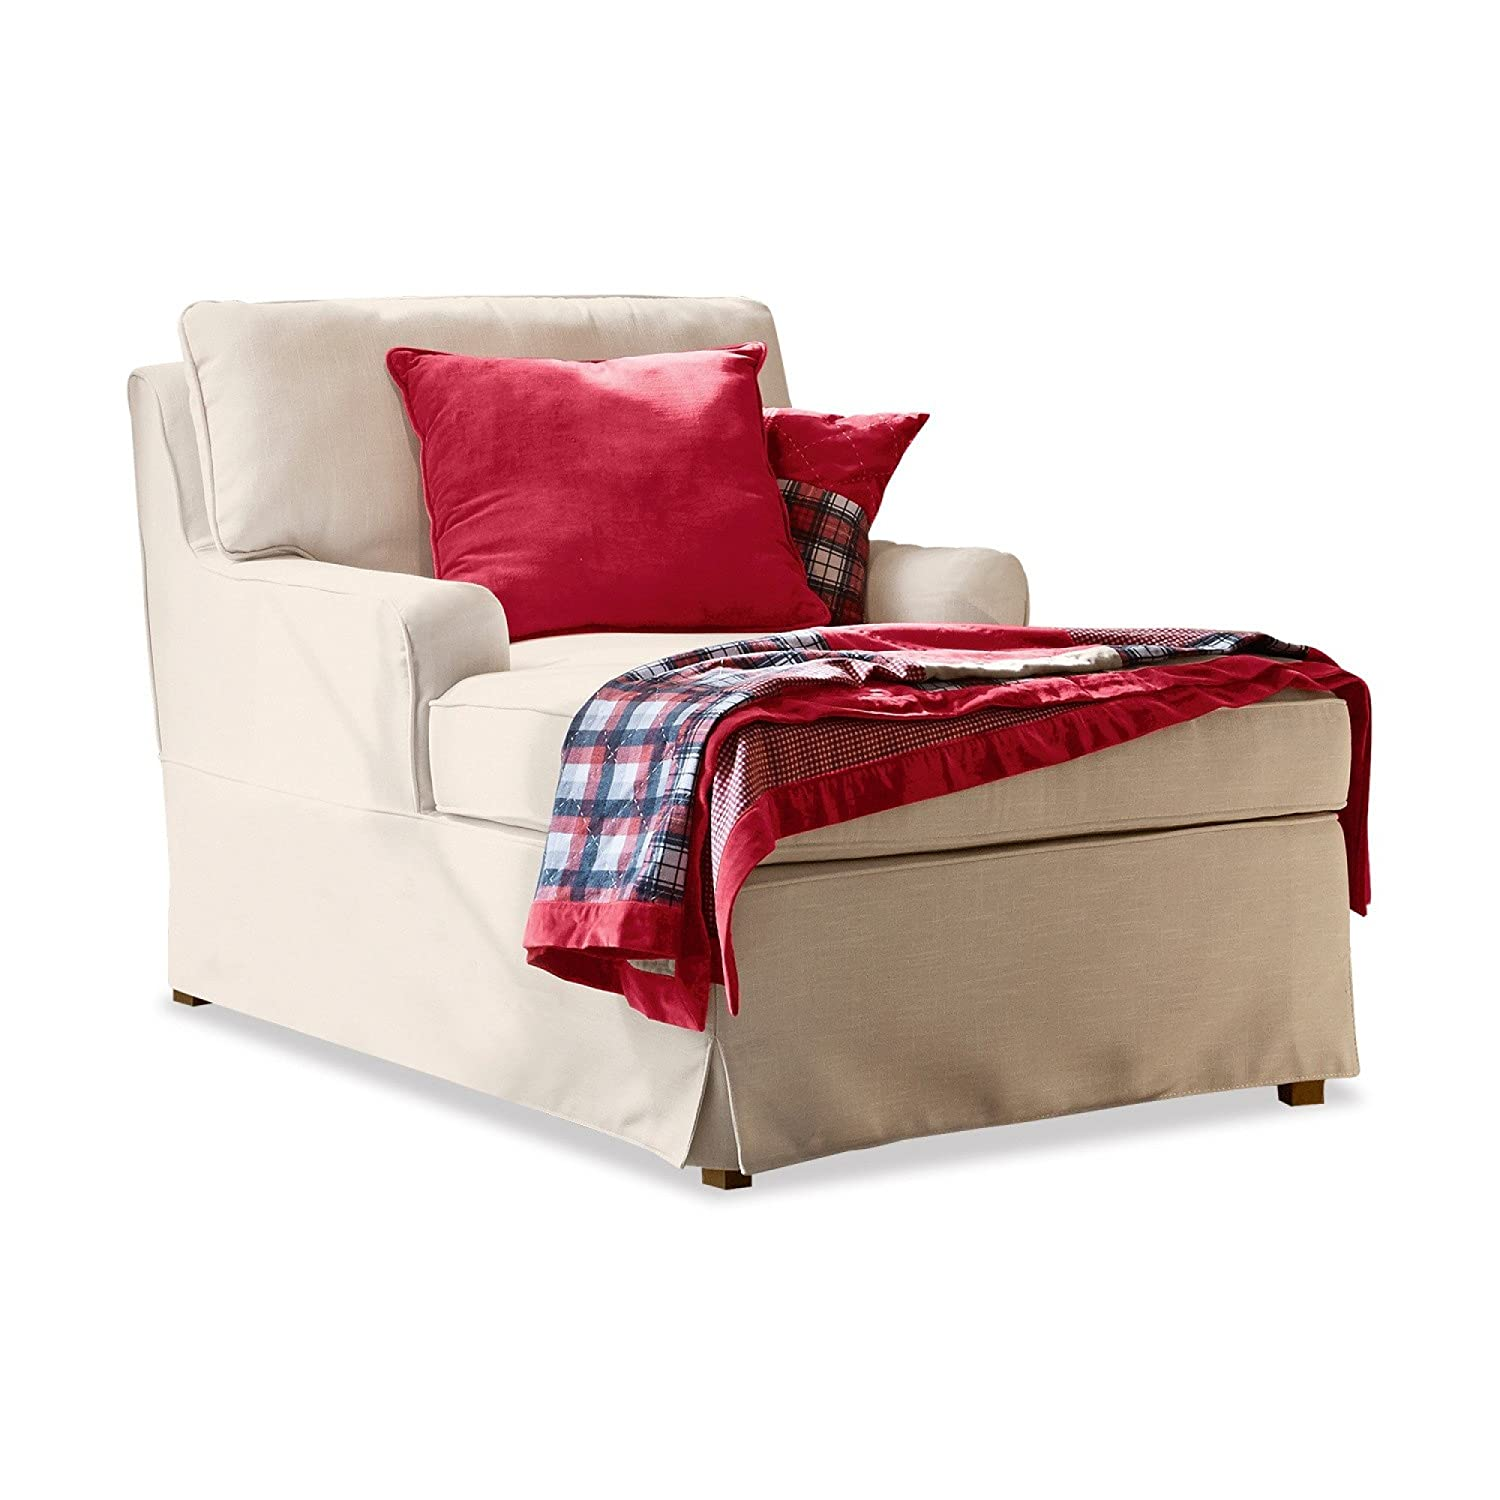 LOBERON Chaiselongue Myersville creme